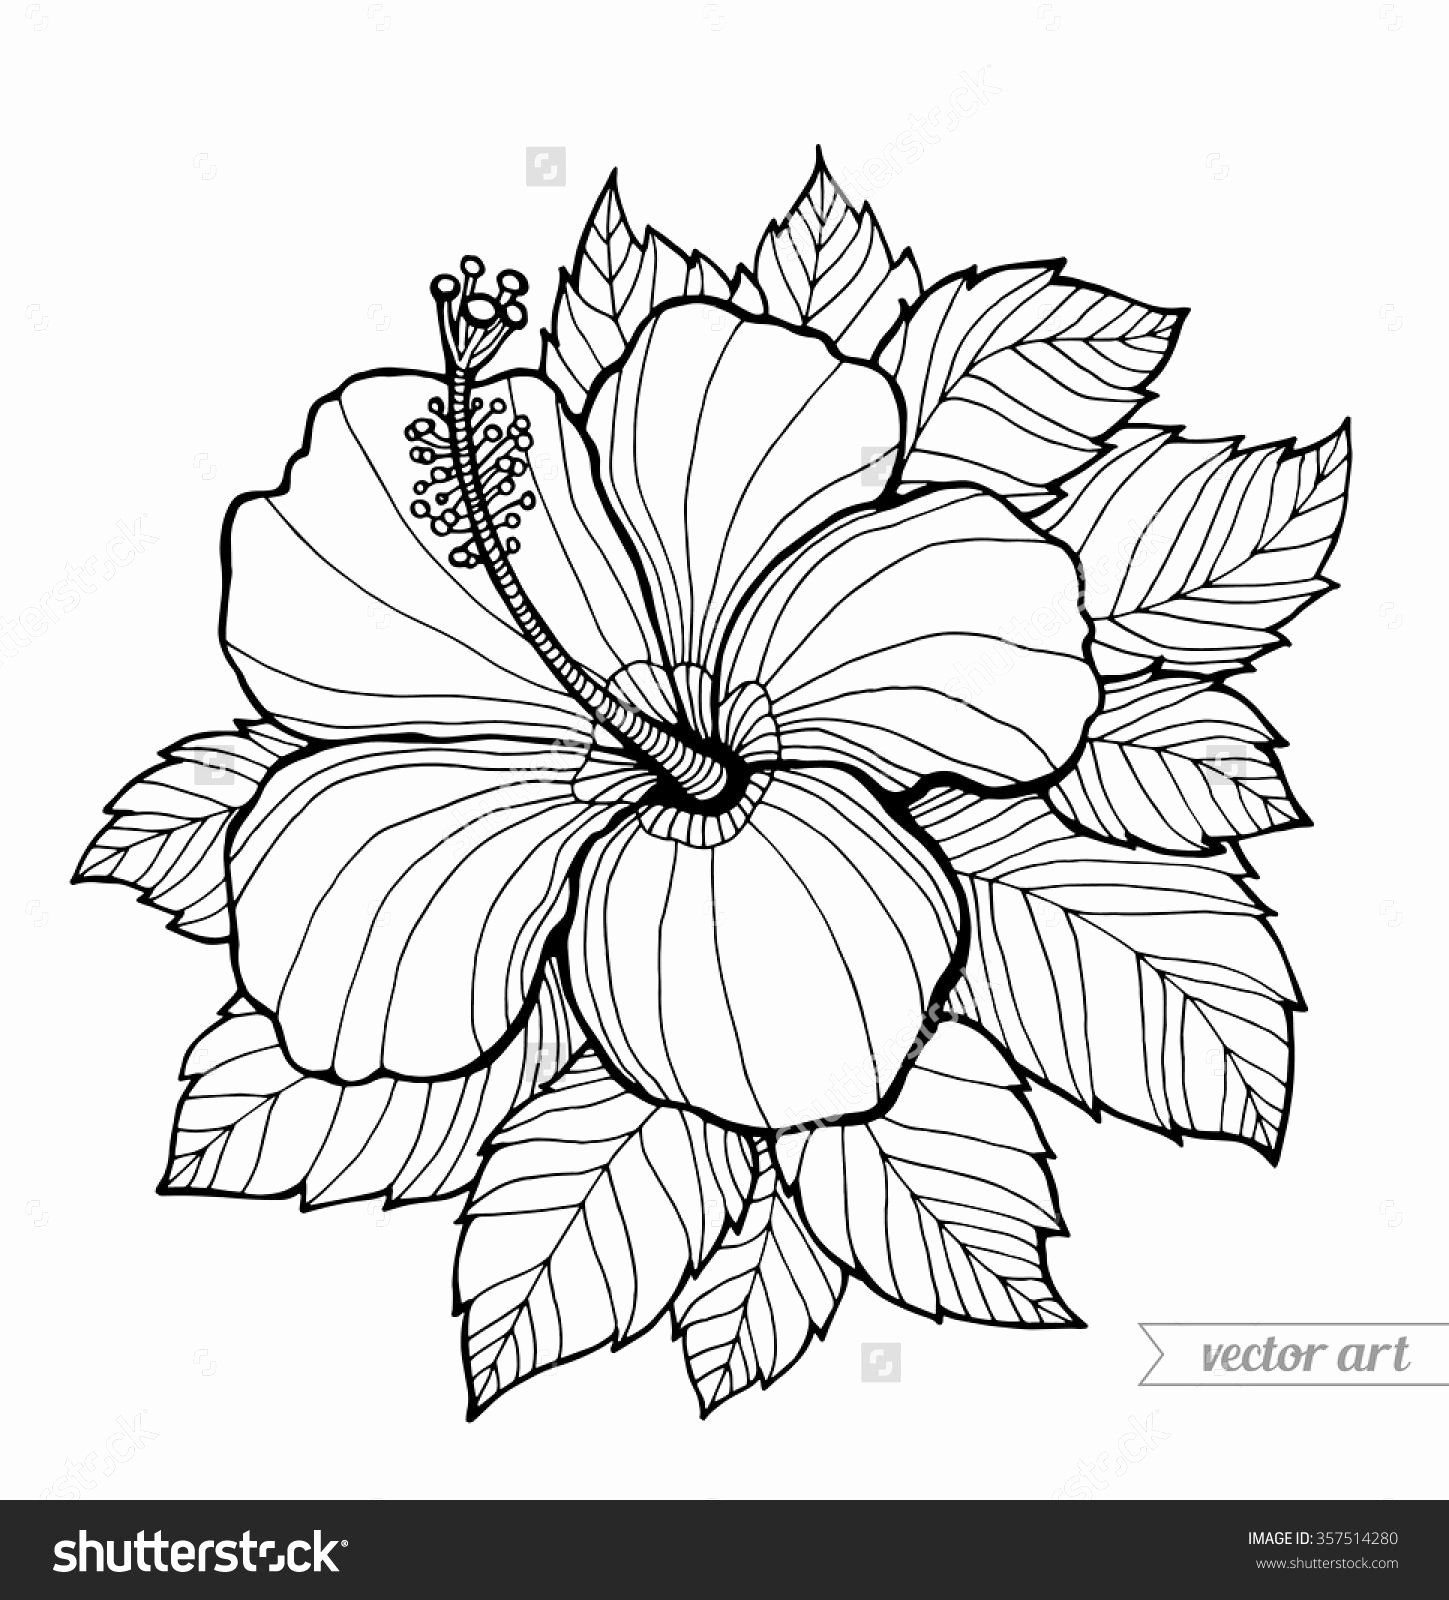 Hawaiian Flower Coloring Page Beautiful Pin By Crystal Rowland On Diy Crafts Flower Coloring Pages Coloring Pages Inspirational Coloring Pages